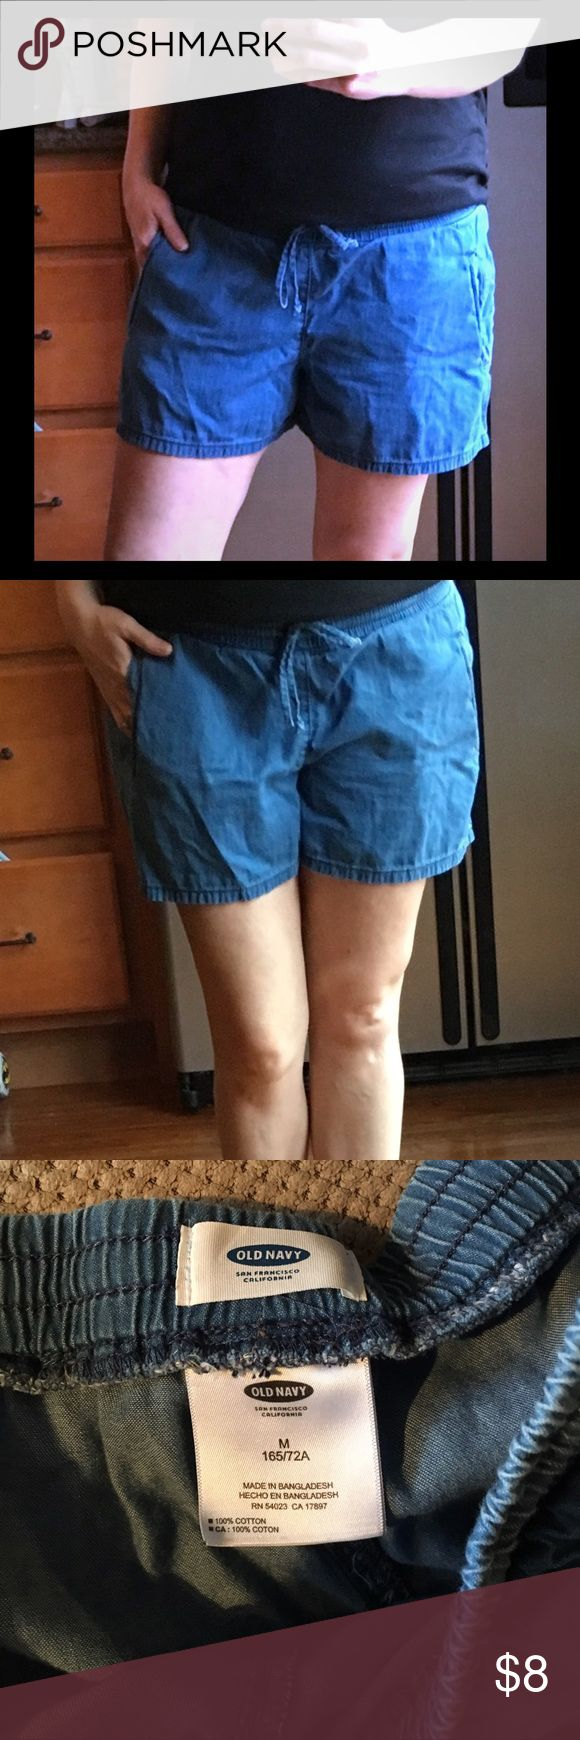 """Comfy drawstring waist cotton """"jean"""" shorts Comfy drawstring waist cotton """"jean"""" shorts. Size M Old Navy these shorts are so cute very casual look but also can be dressed up a little with a cute tank top and wedges. These are meant to not be tight. Great condition. Old Navy Shorts"""